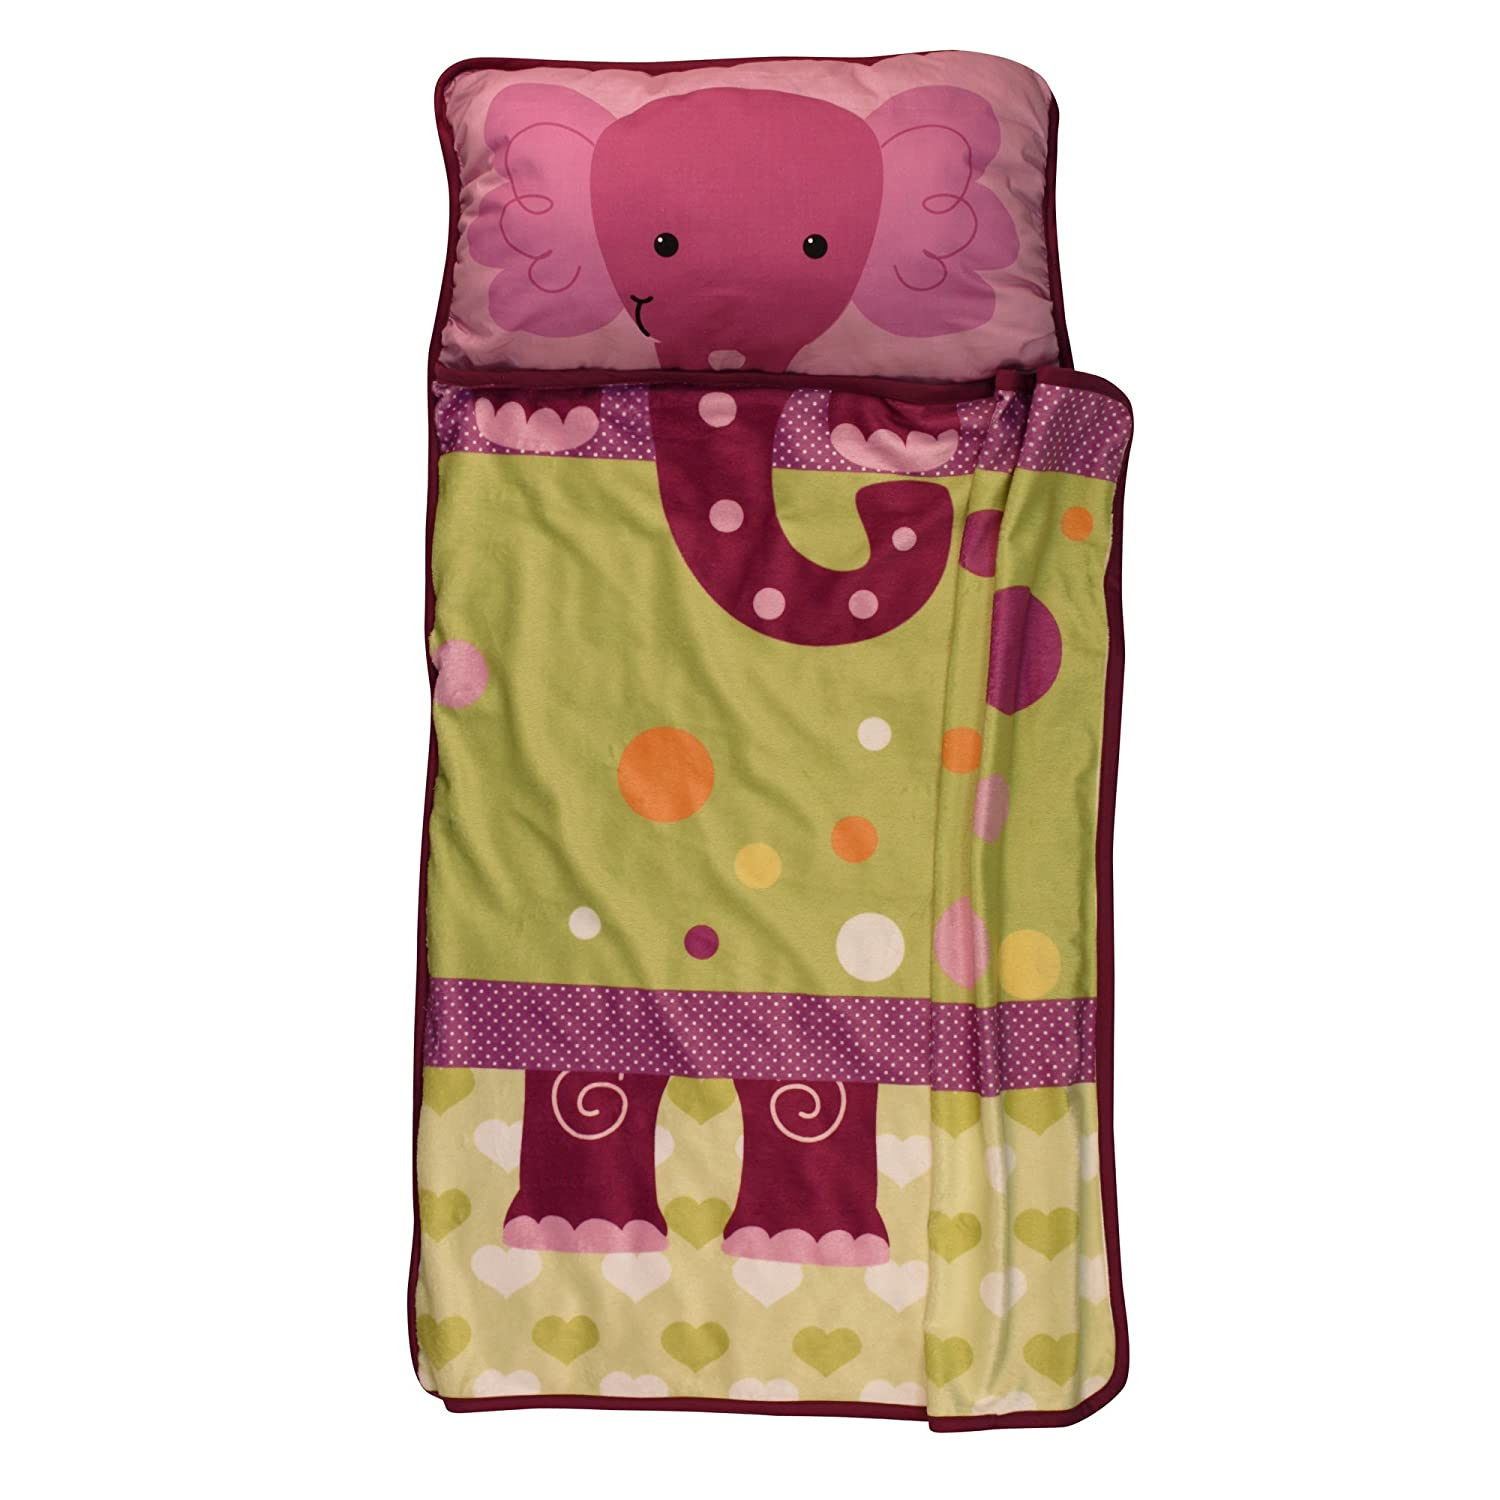 nap products care for elektra child quilted sleepovers mats daycare mat dream travel emporium